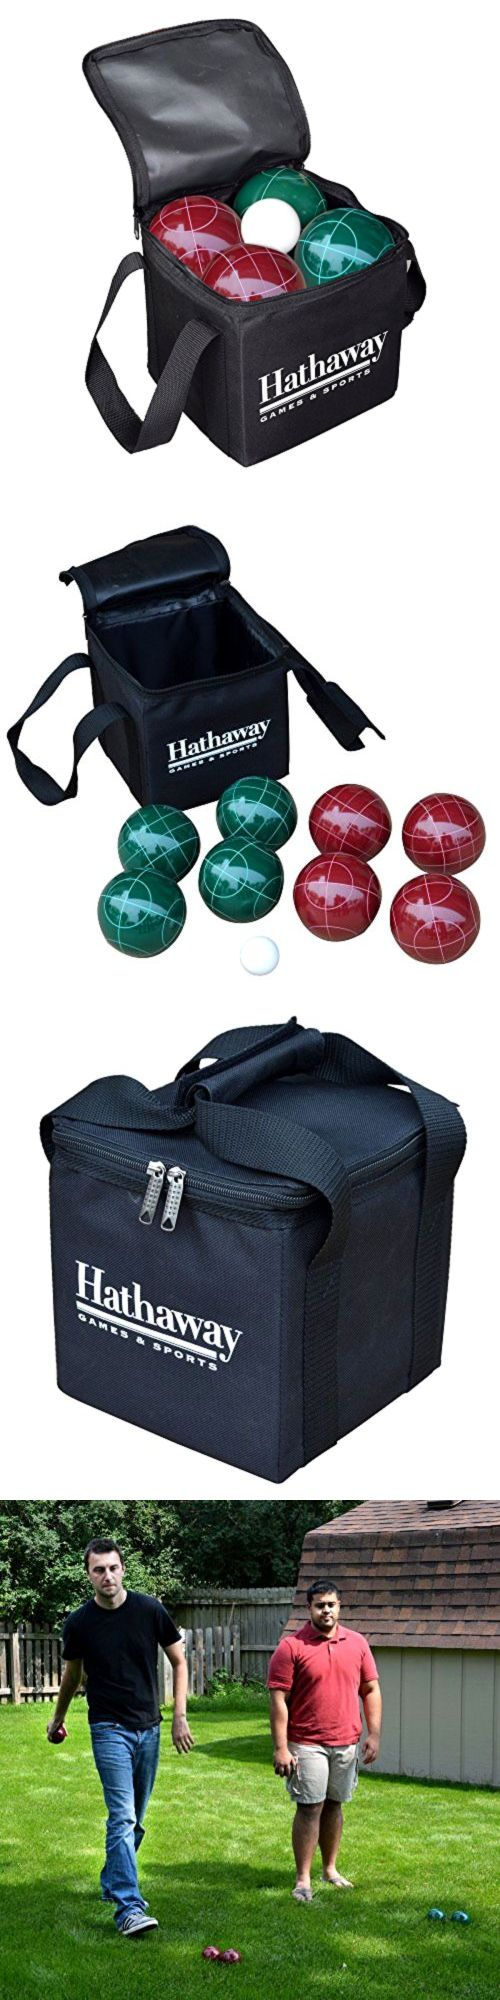 Bocce Ball 79788: Bocce Ball Set Case 8 Carrying Game Lawn 9 Carry Sports Piece Bag Italy Outdoor -> BUY IT NOW ONLY: $50.45 on eBay!